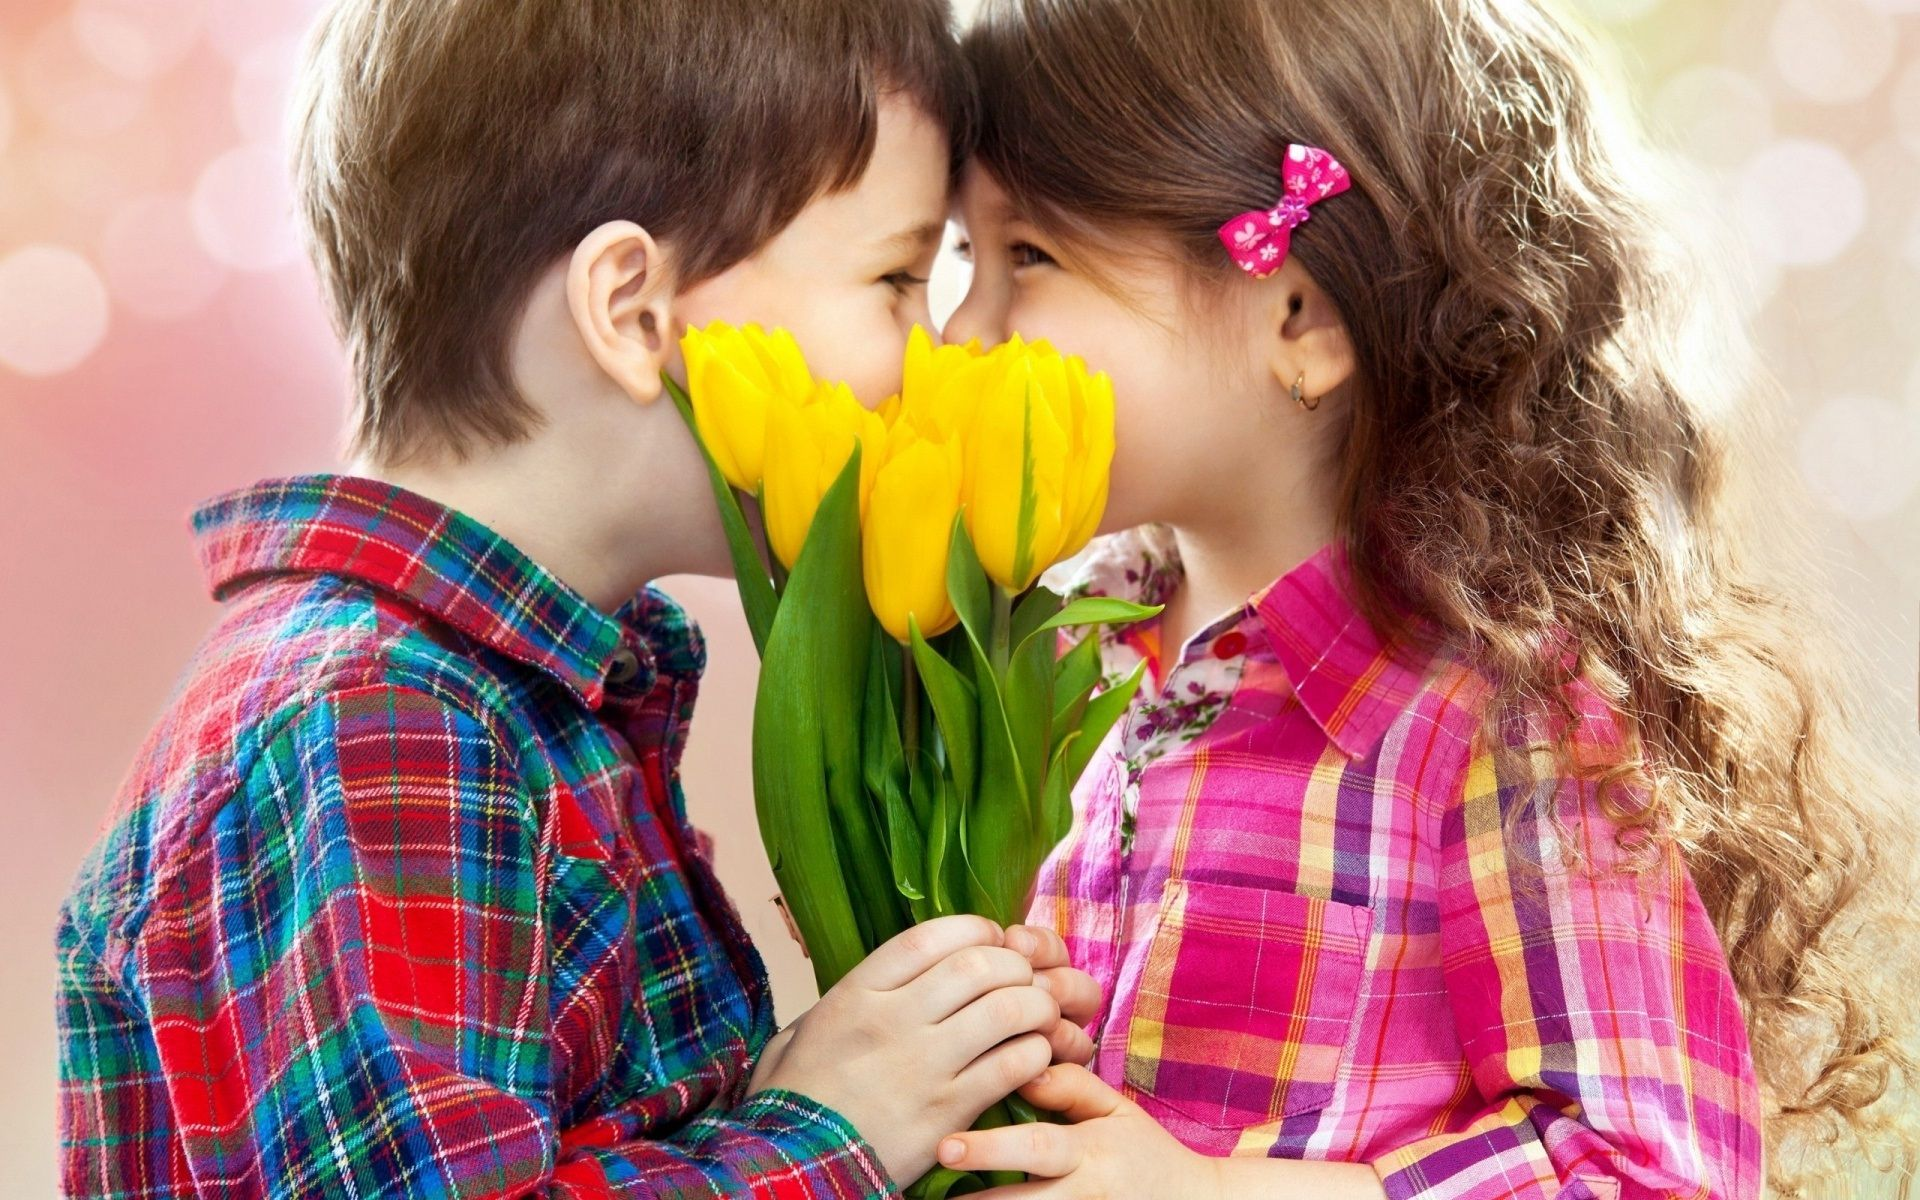 cute Love Girl And Boy Wallpaper : Baby couple Wallpaper Widescreen cute Wallpapers Pinterest More couple wallpaper and ...